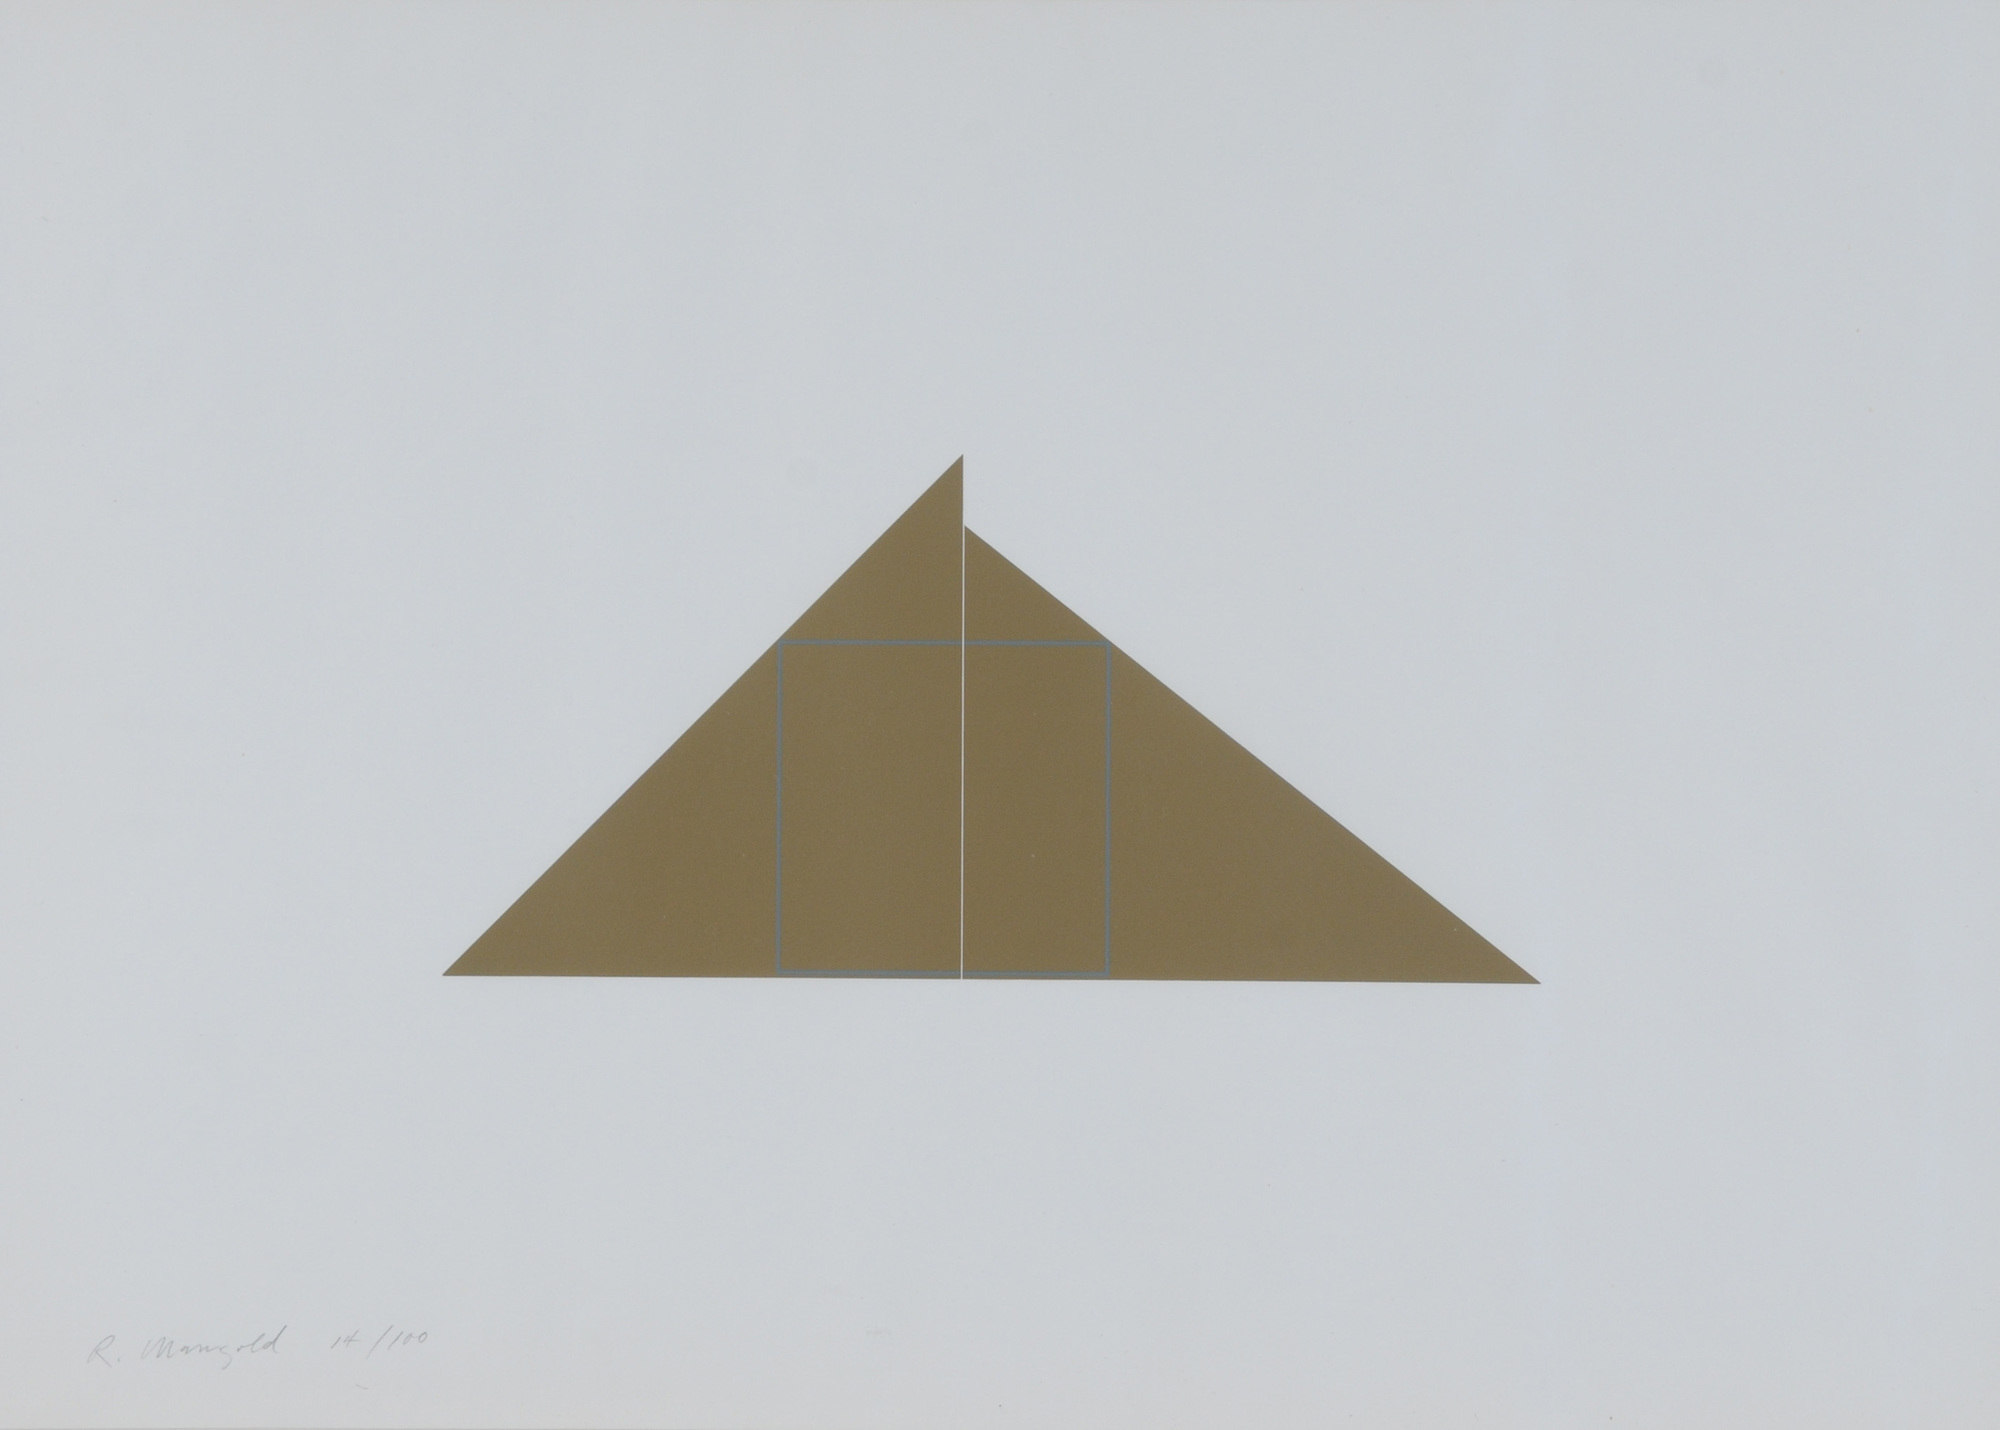 Mangold Robert, A Square within Two Triangles